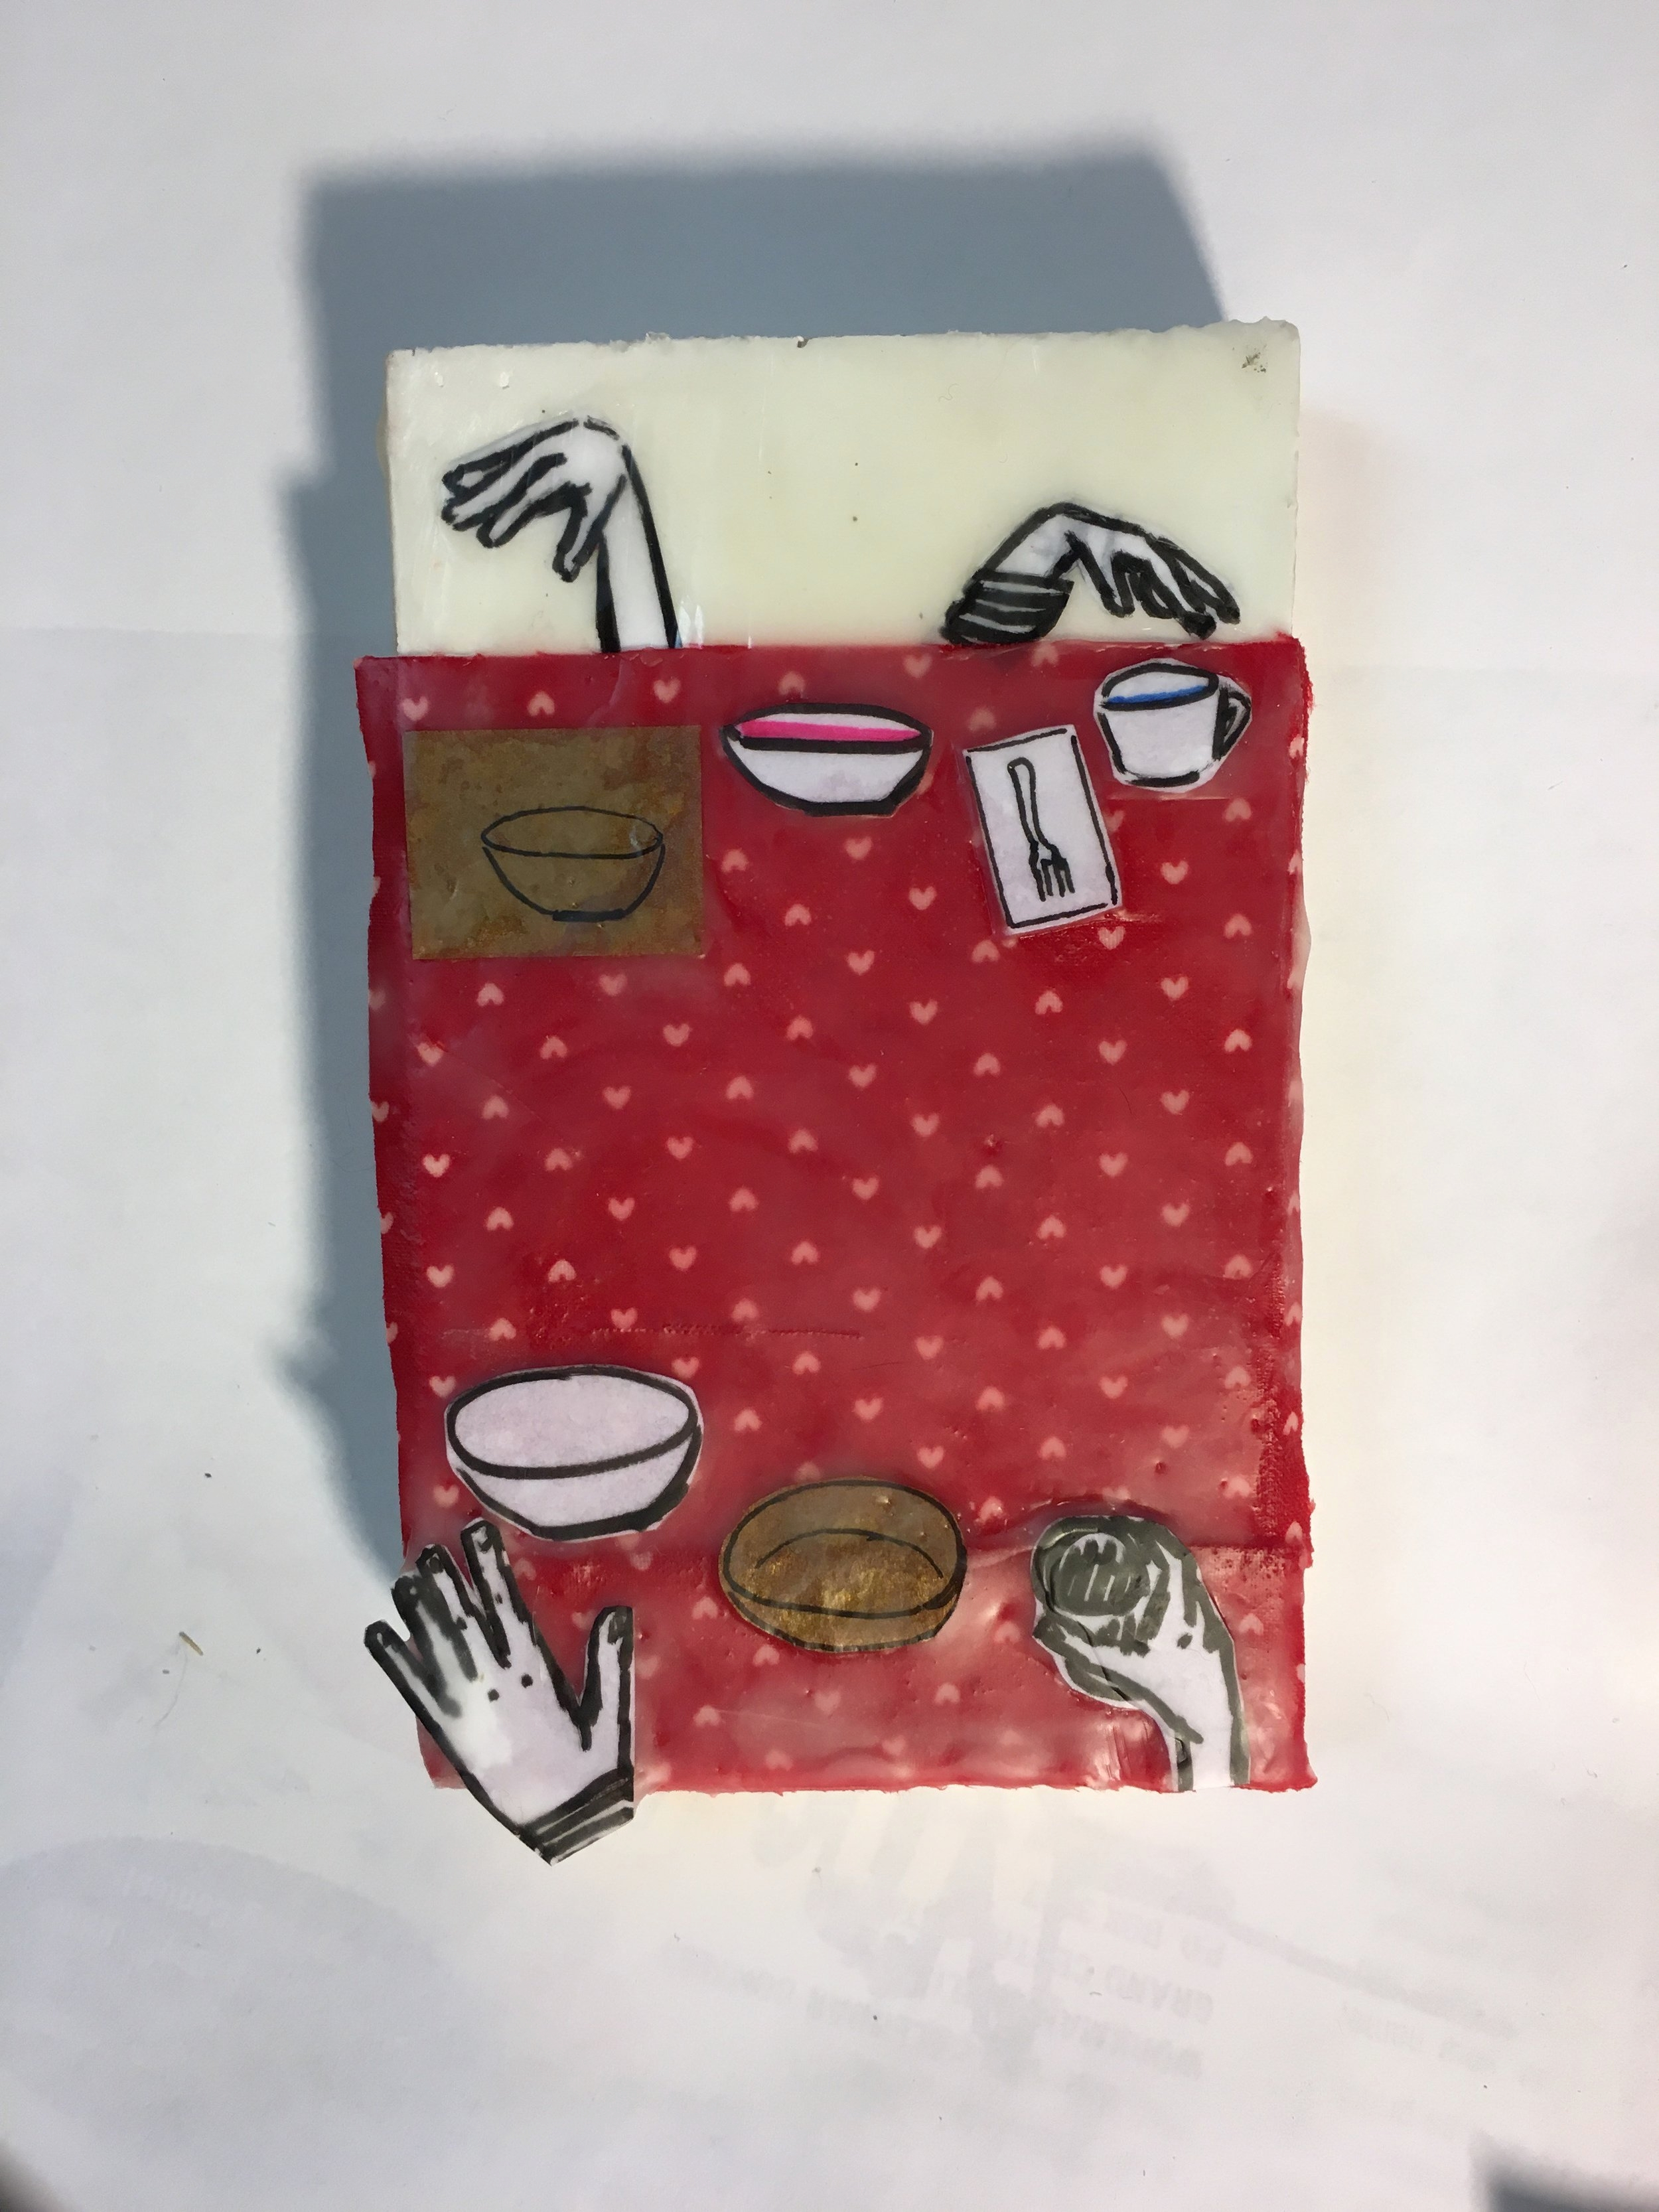 """Anxiety About New Relationships no. 1, Thank you for making dinner"", 3"" x 5"", Encaustic, paper and fabric on board, 2018"